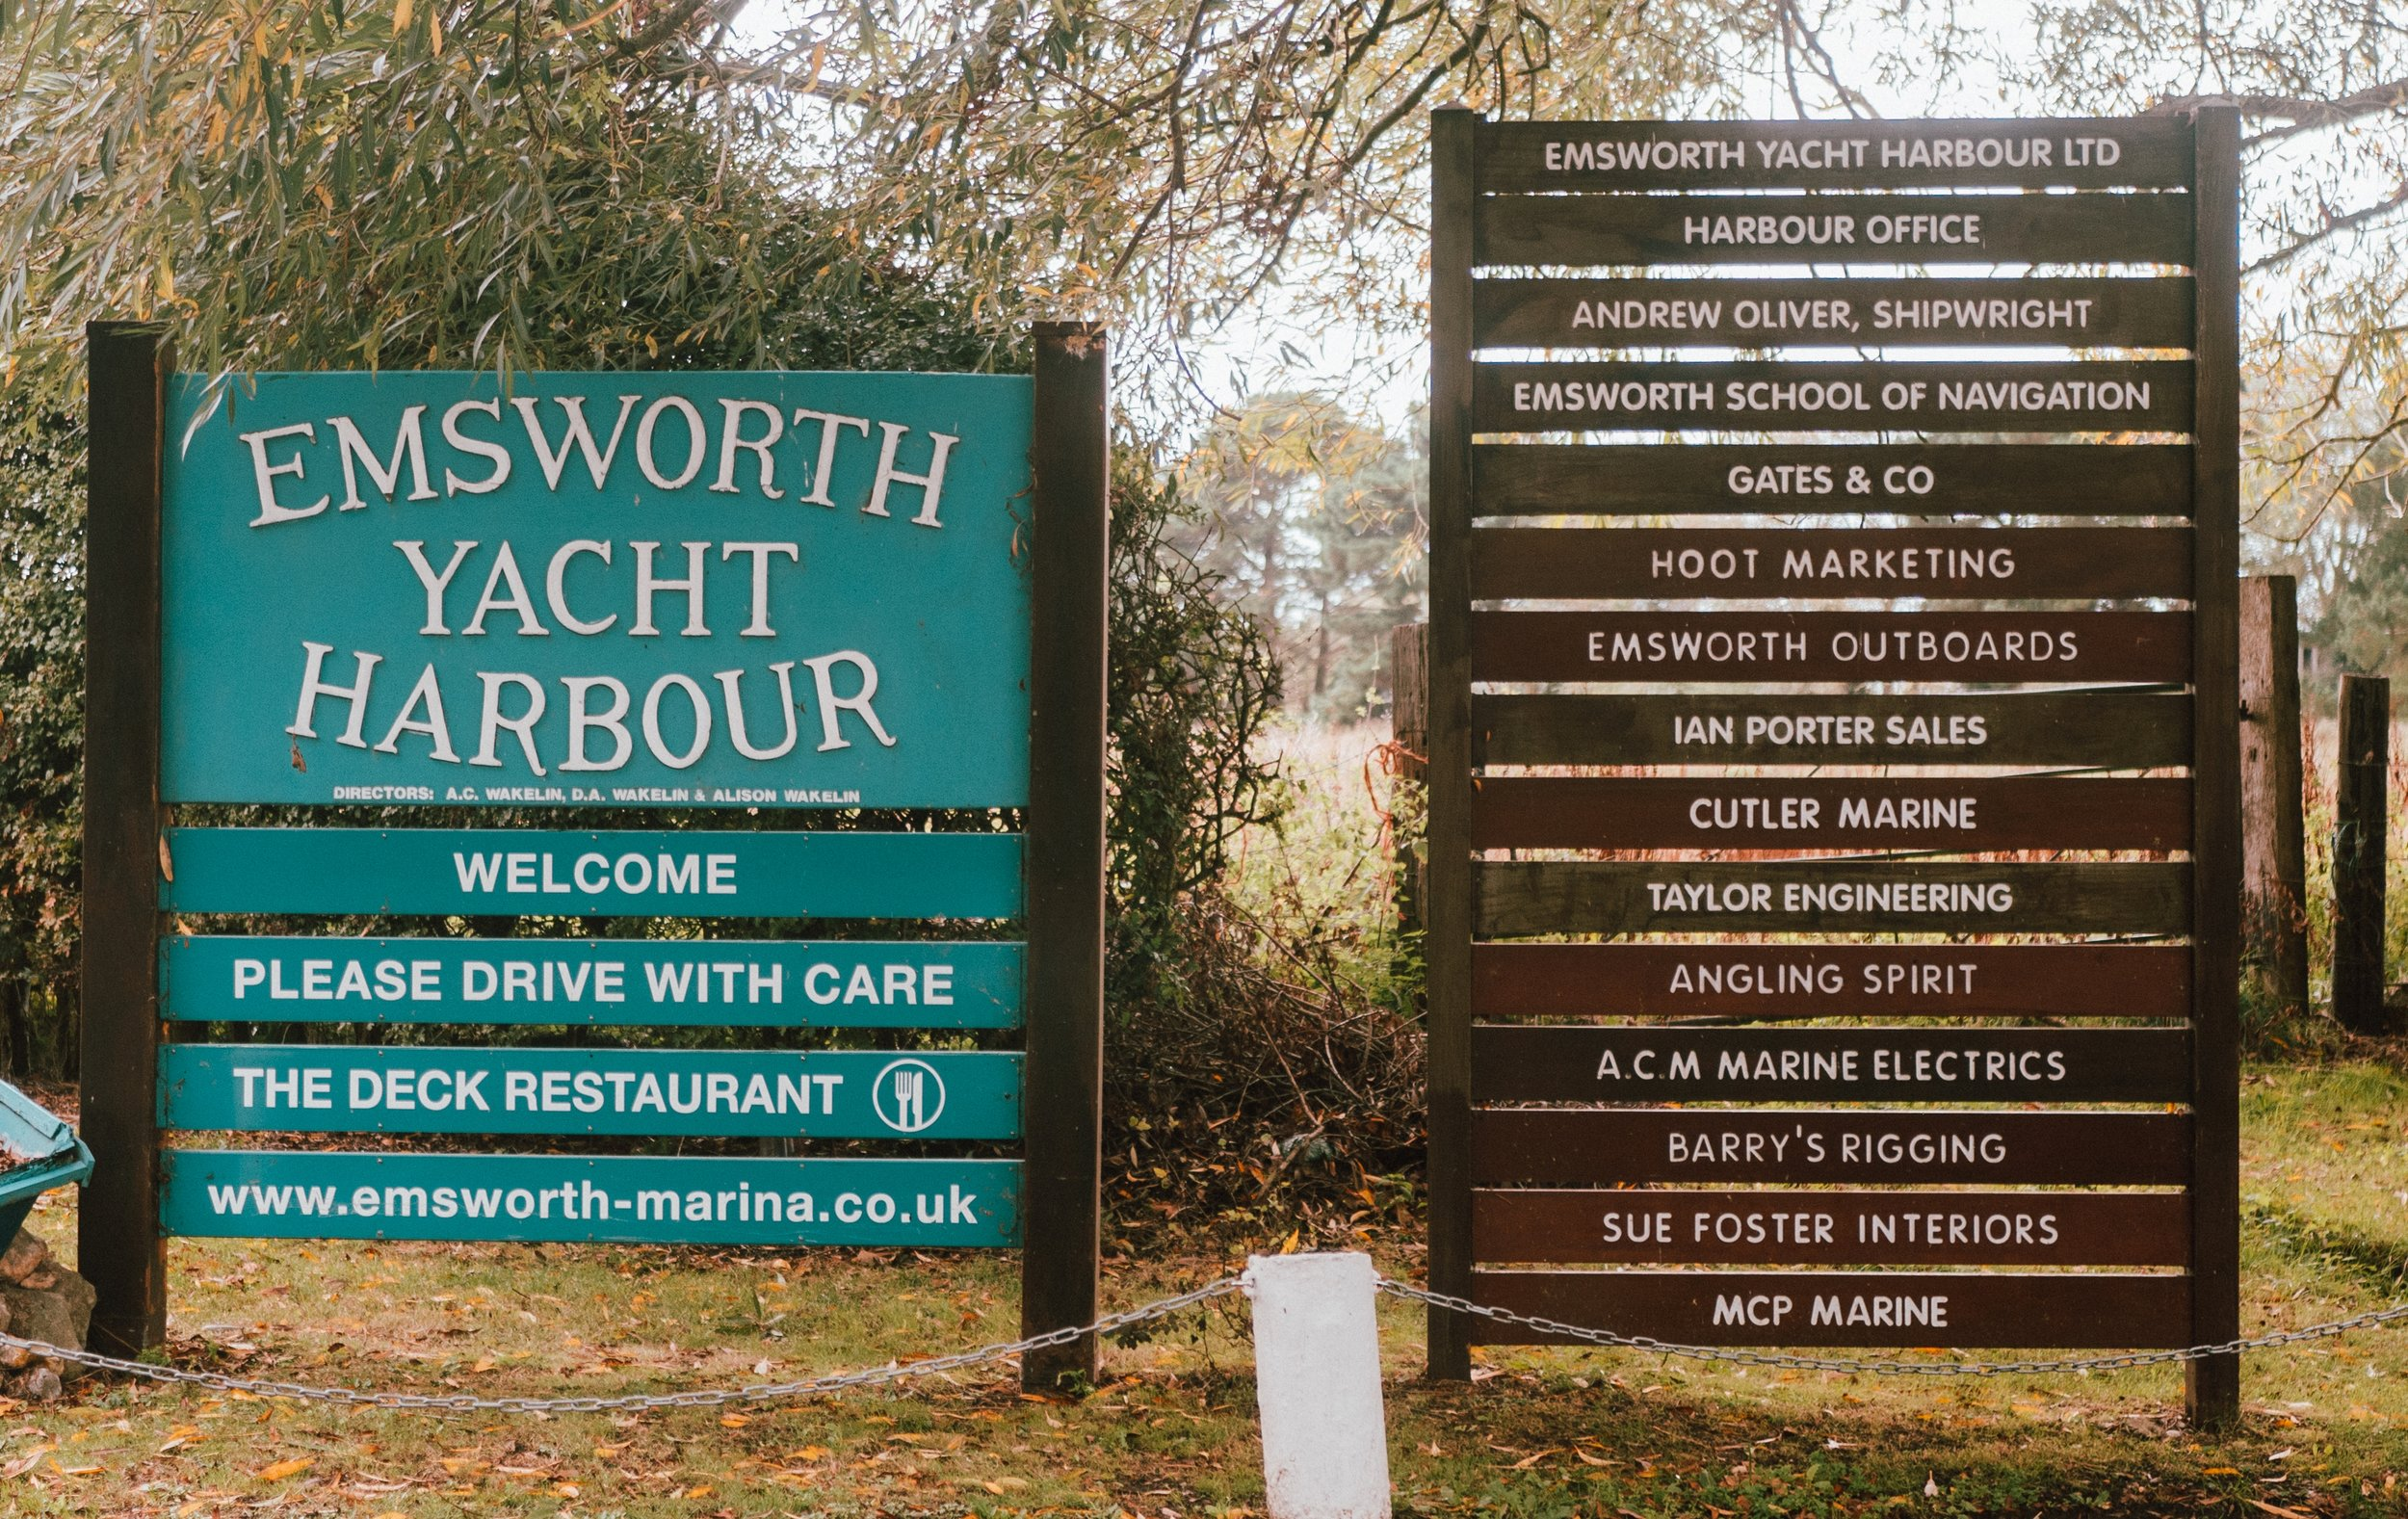 Convenient showroom located in Emsworth Yacht Harbour -